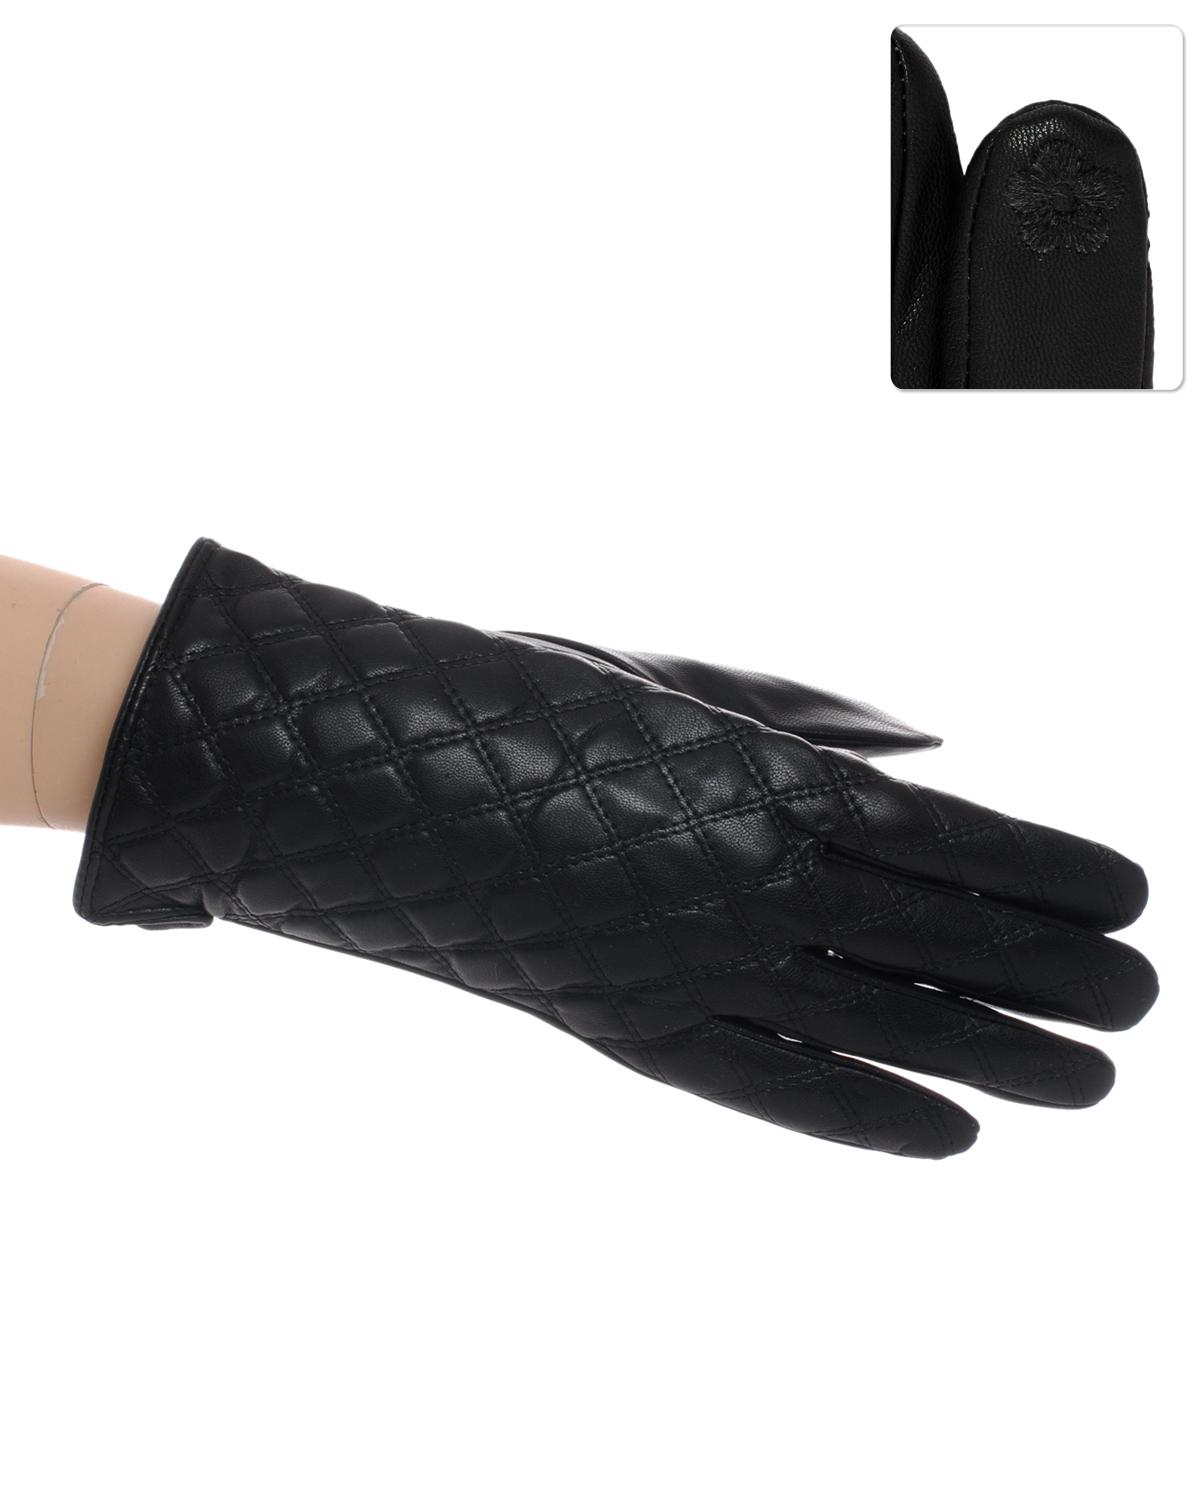 AO225(BK)-wholesale-gloves-leatherette-pu-faux-leather-quilted-pattern-flecce-insulation-touchscreen-one-size(0).jpg